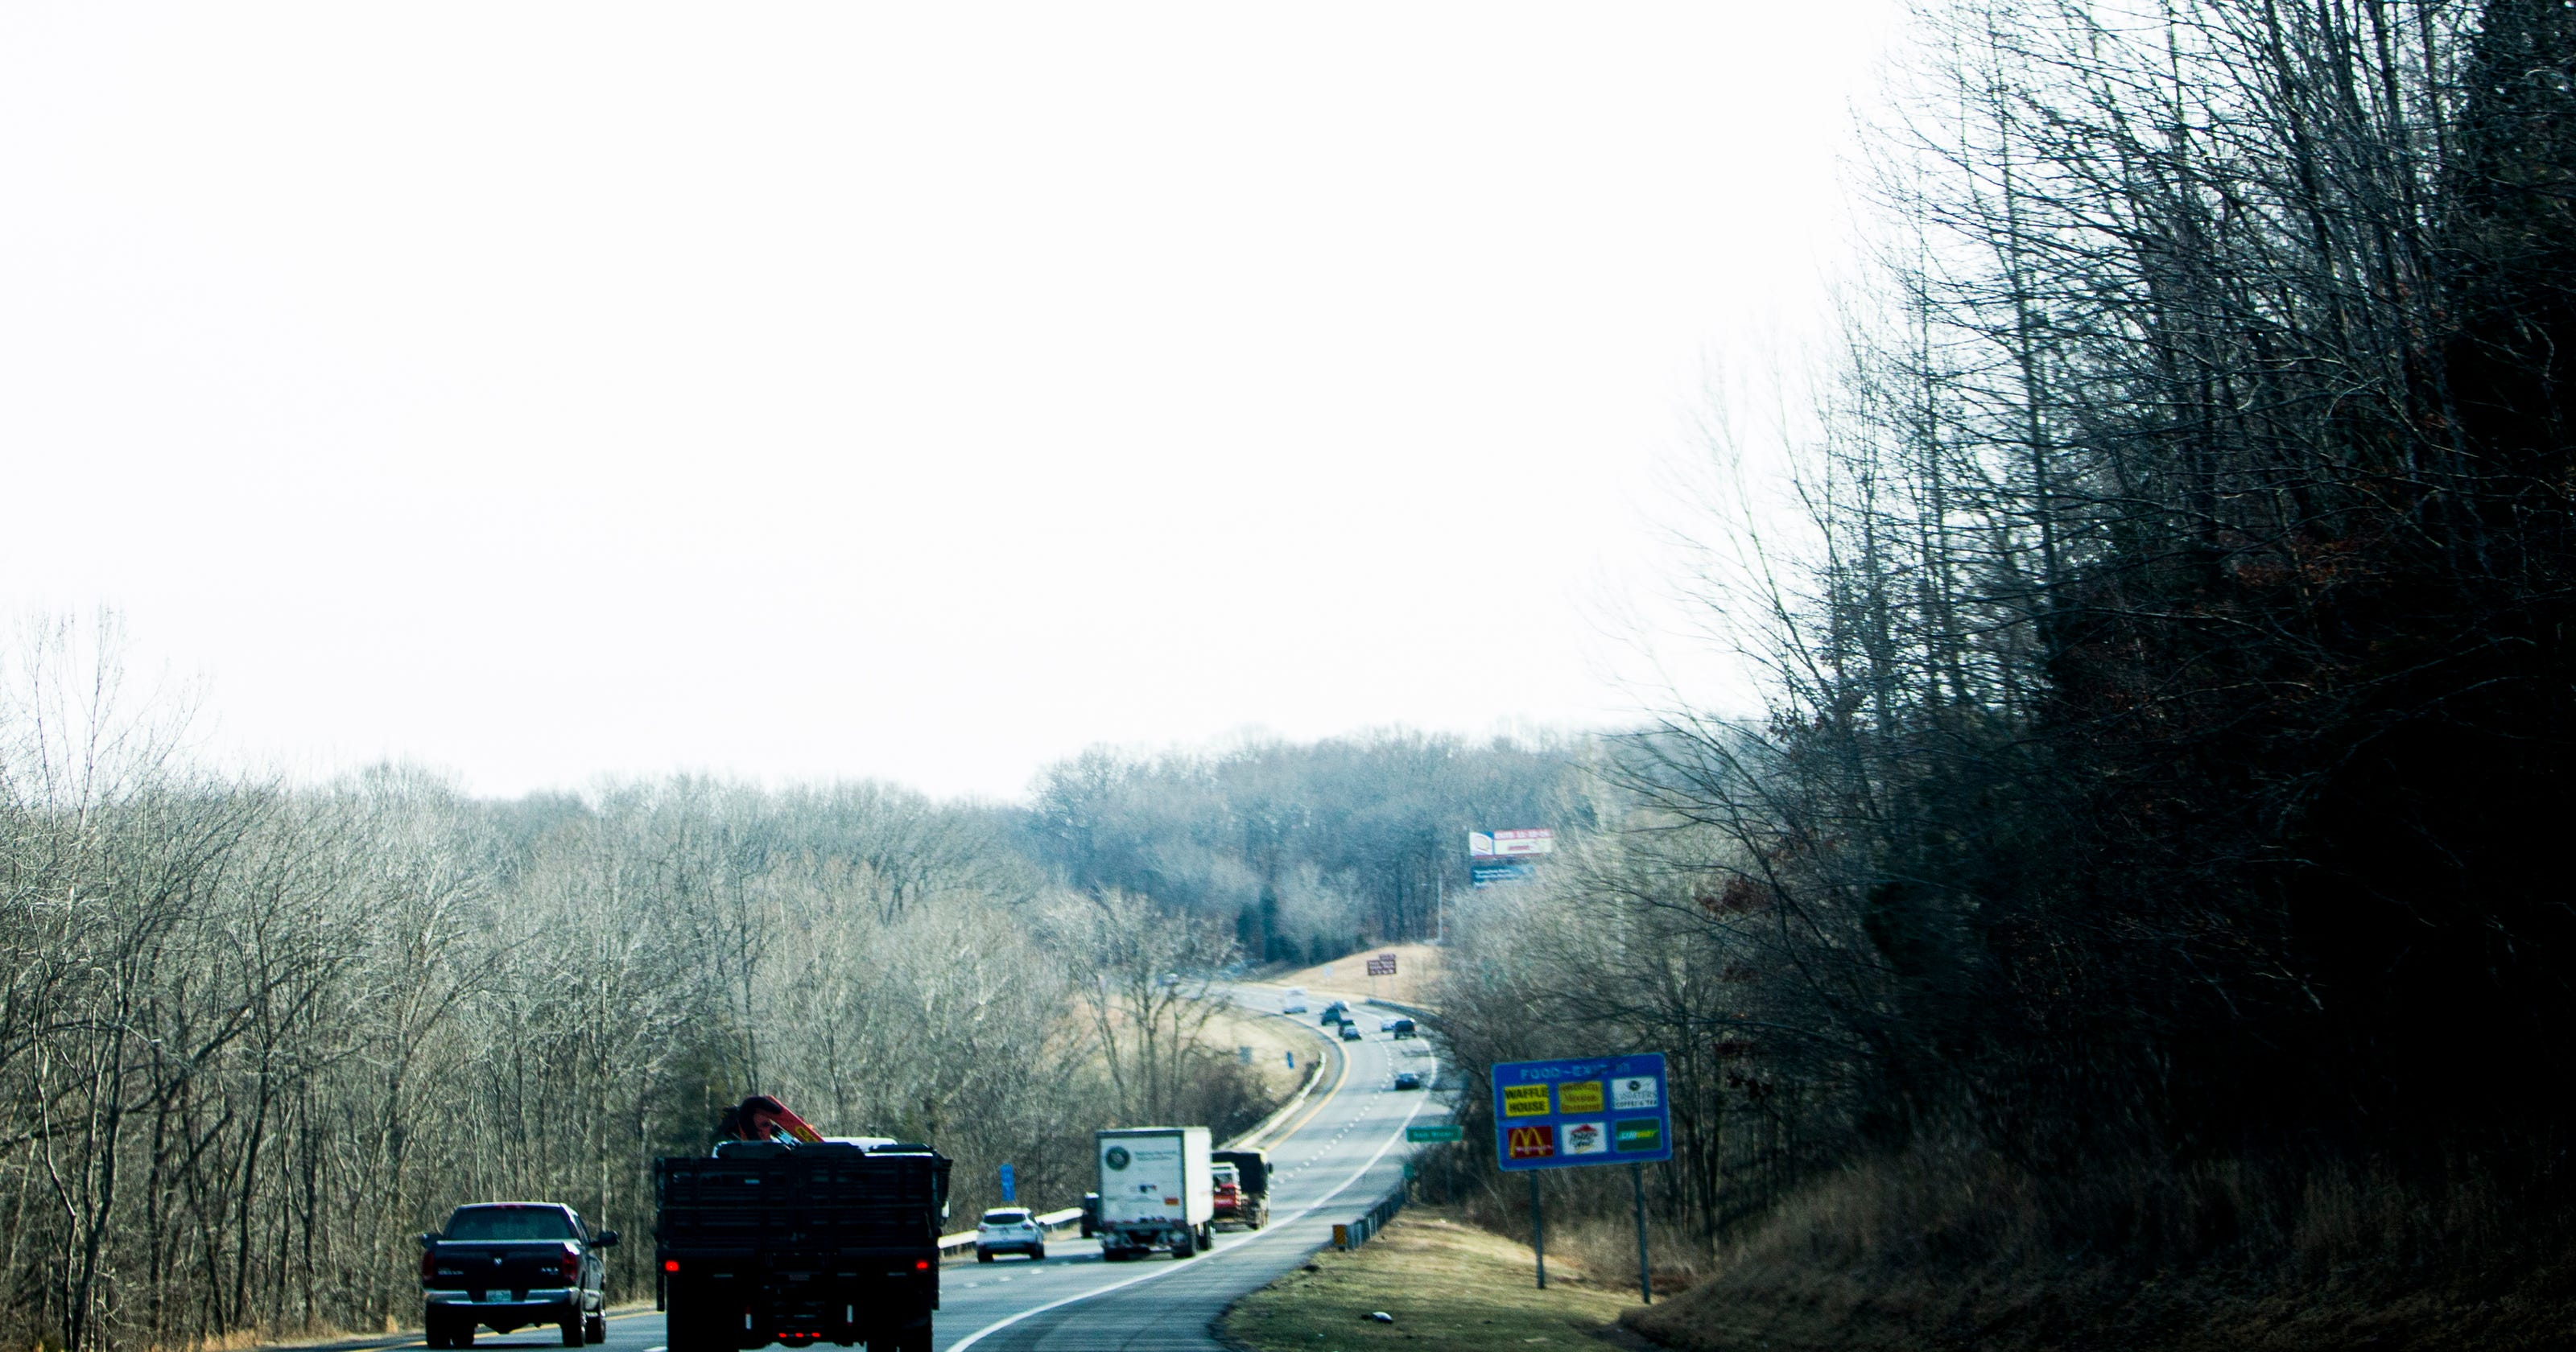 Widening of I-24 through Clarksville moves up on TDOT to-do list